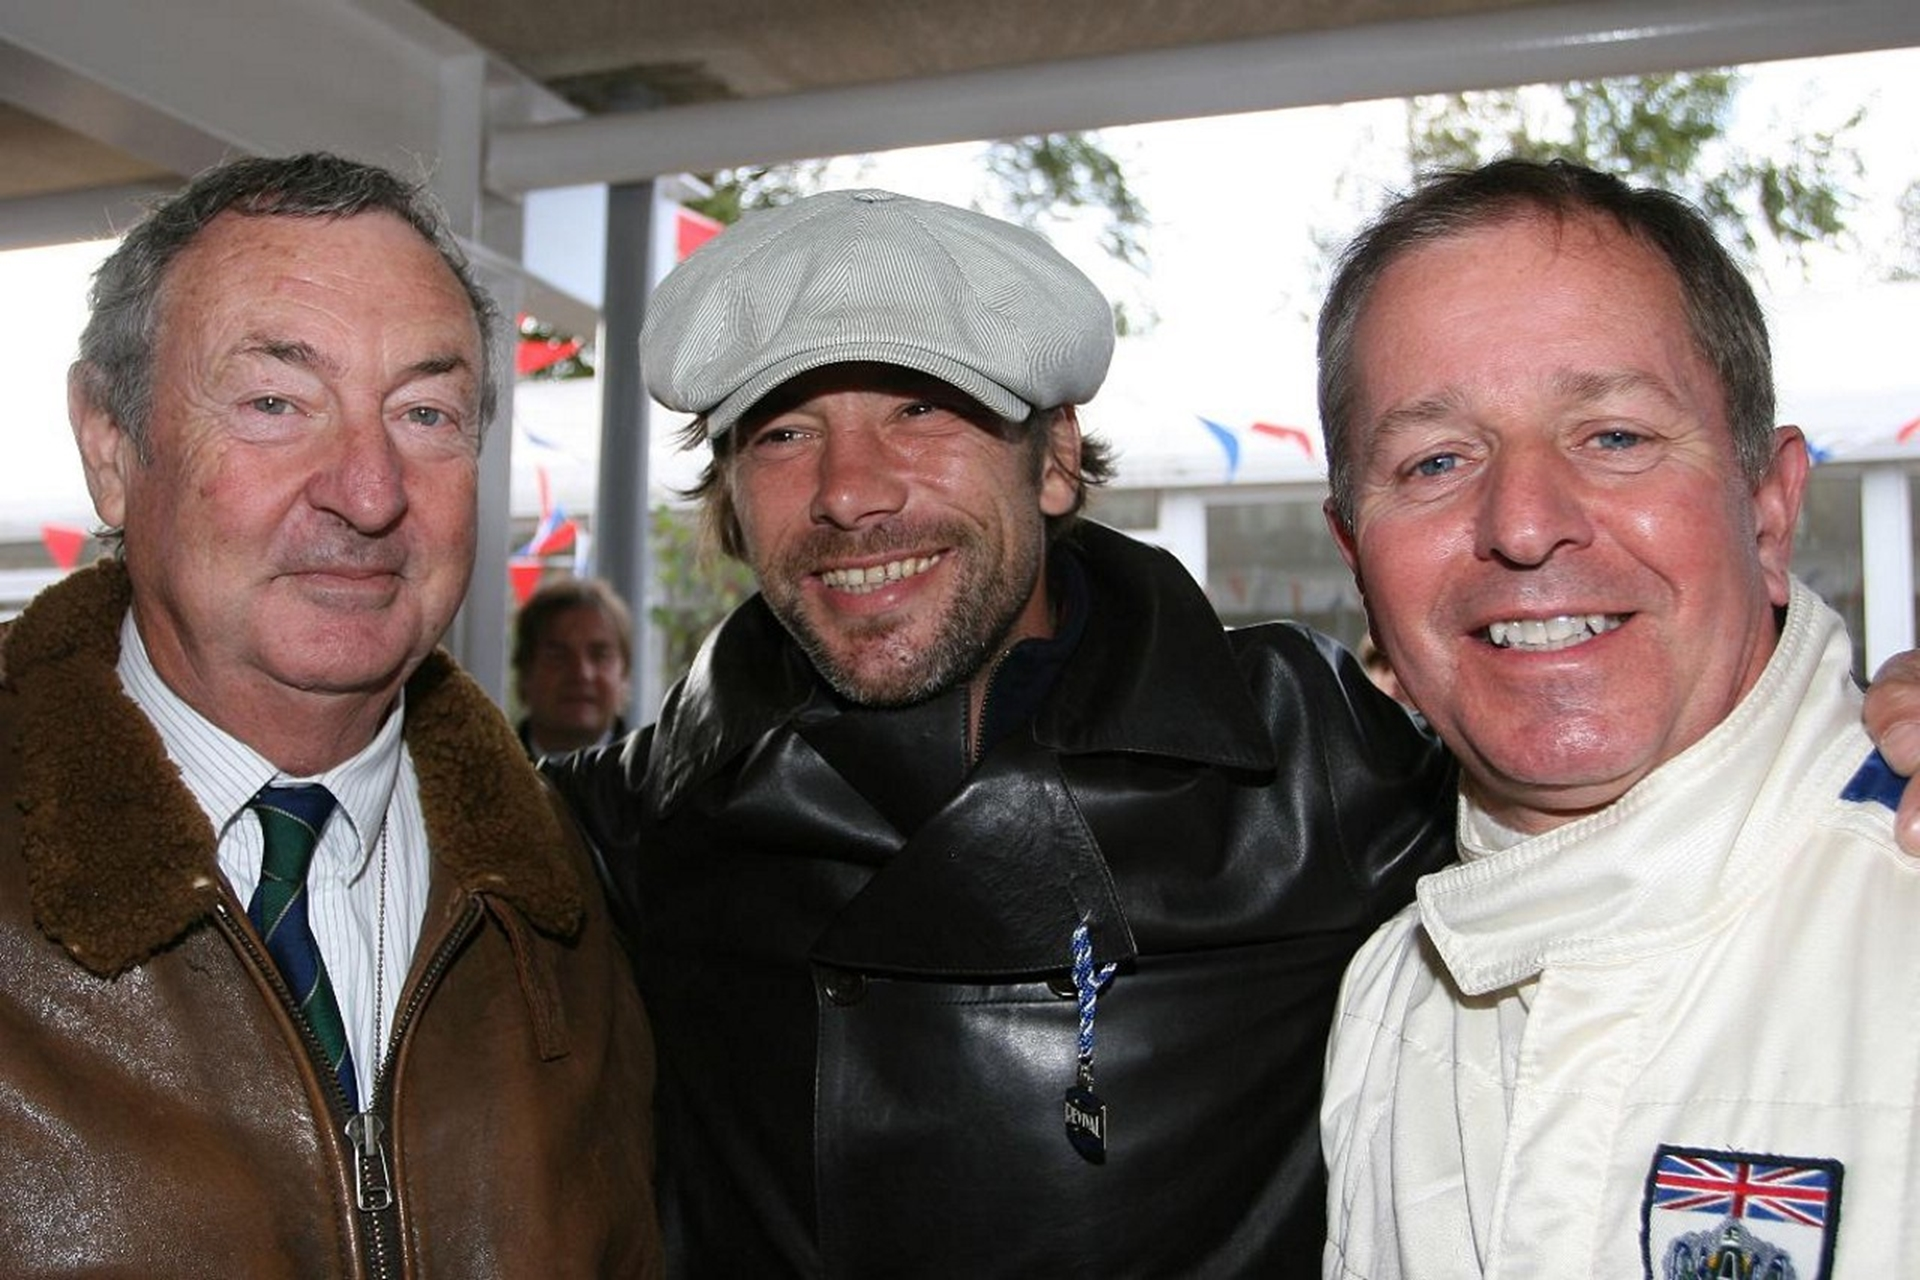 Nick Mason Jay Kay and Martin Brundle